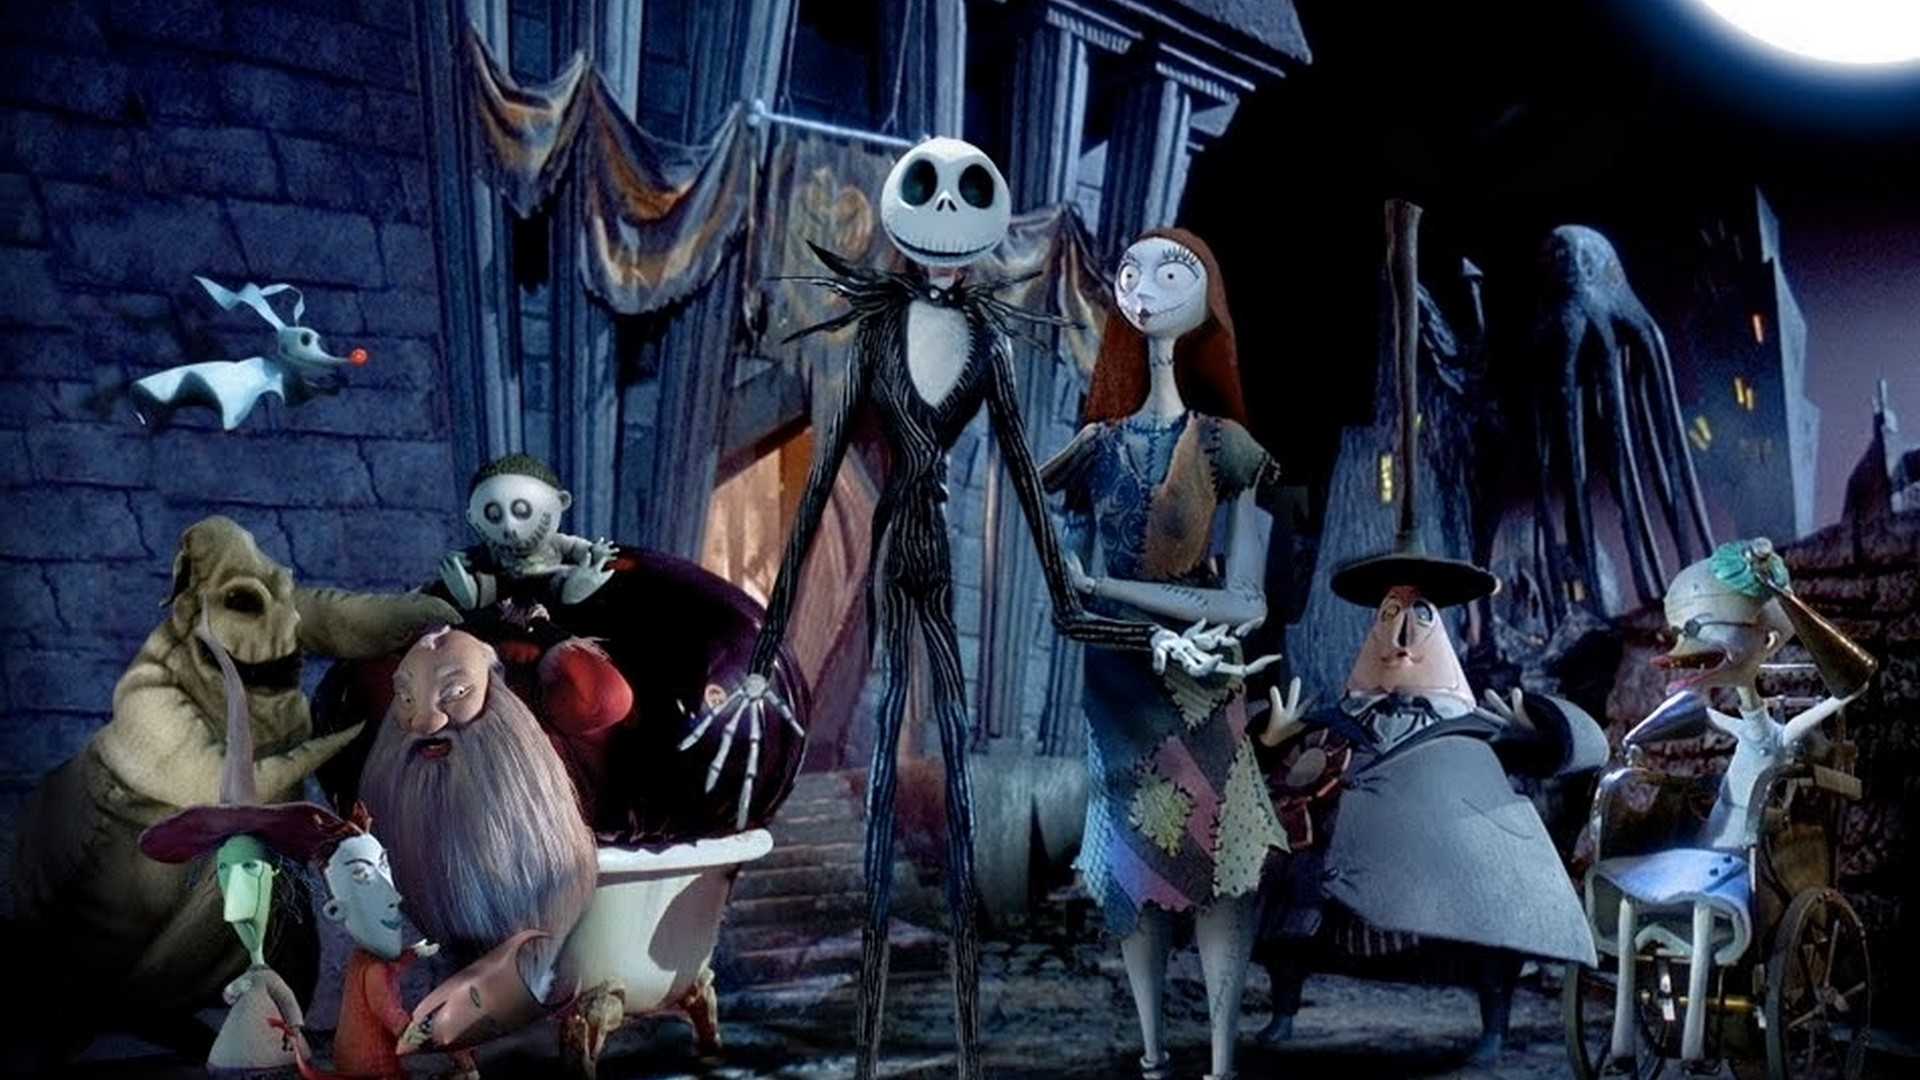 Nightmare Before Christmas Trailer Wallpaper with high-resolution 1920x1080 pixel. You can use this poster wallpaper for your Desktop Computers, Mac Screensavers, Windows Backgrounds, iPhone Wallpapers, Tablet or Android Lock screen and another Mobile device